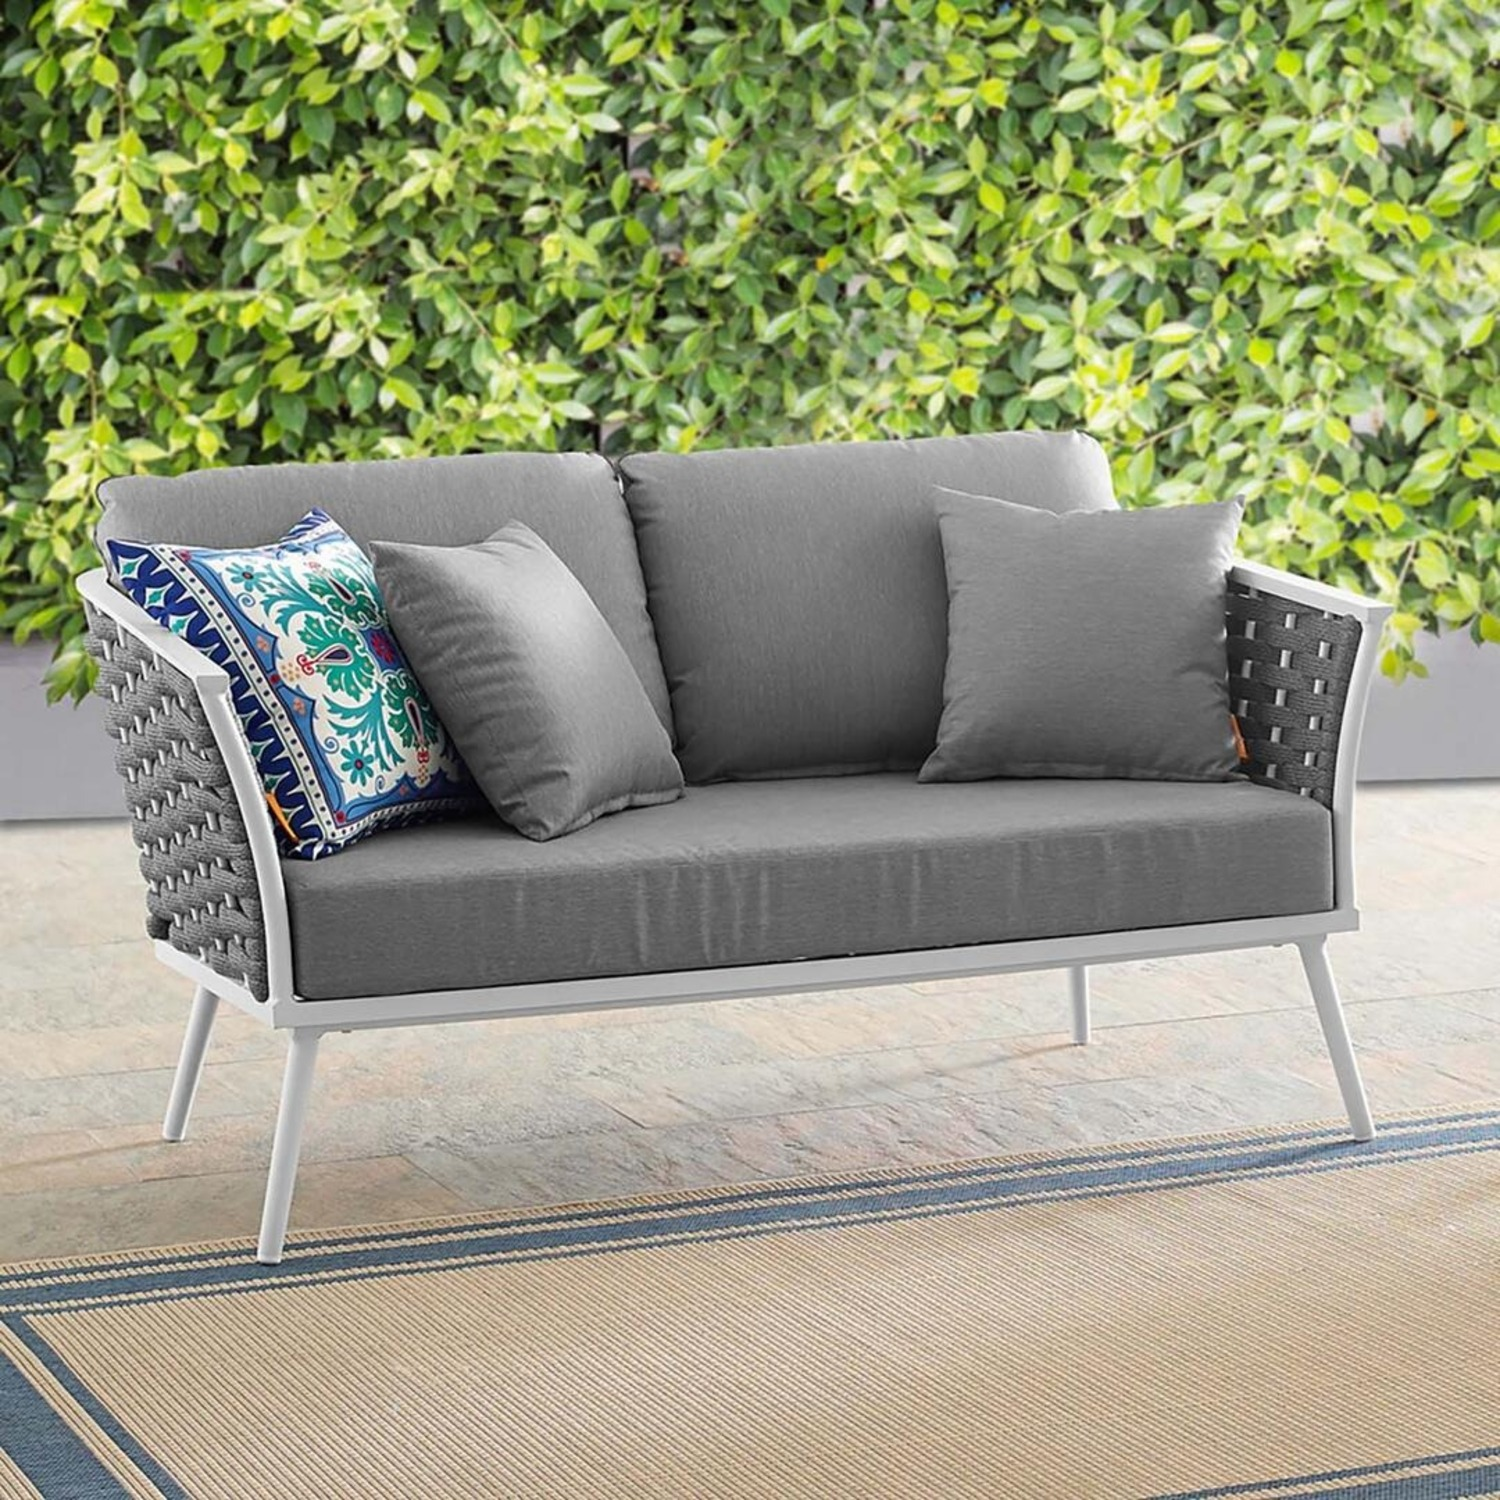 Outdoor Loveseat In Gray Fabric Rope & White Frame - image-4